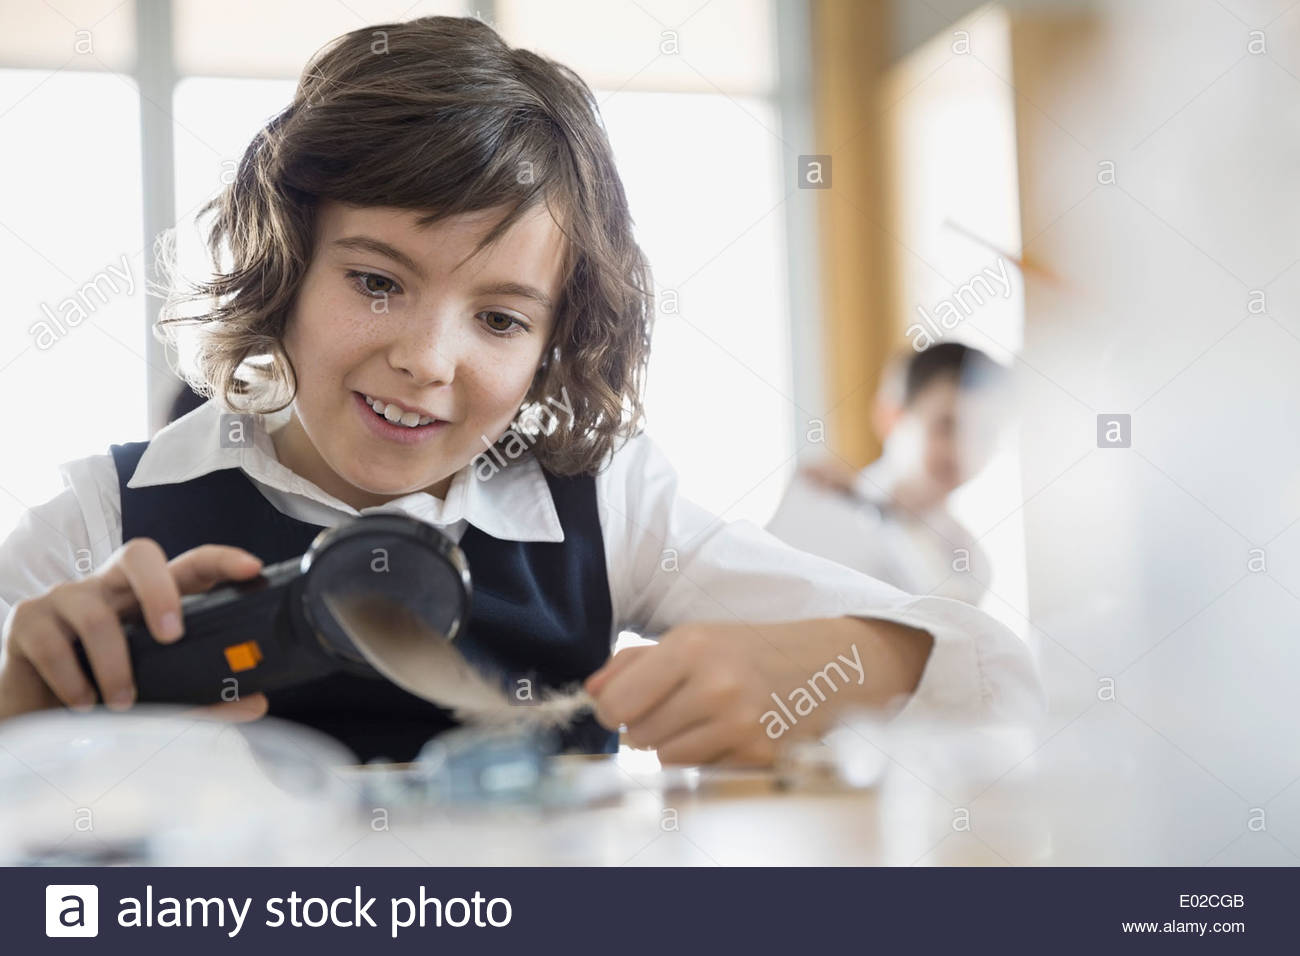 School girl conducting scientific experiment in classroom - Stock Image